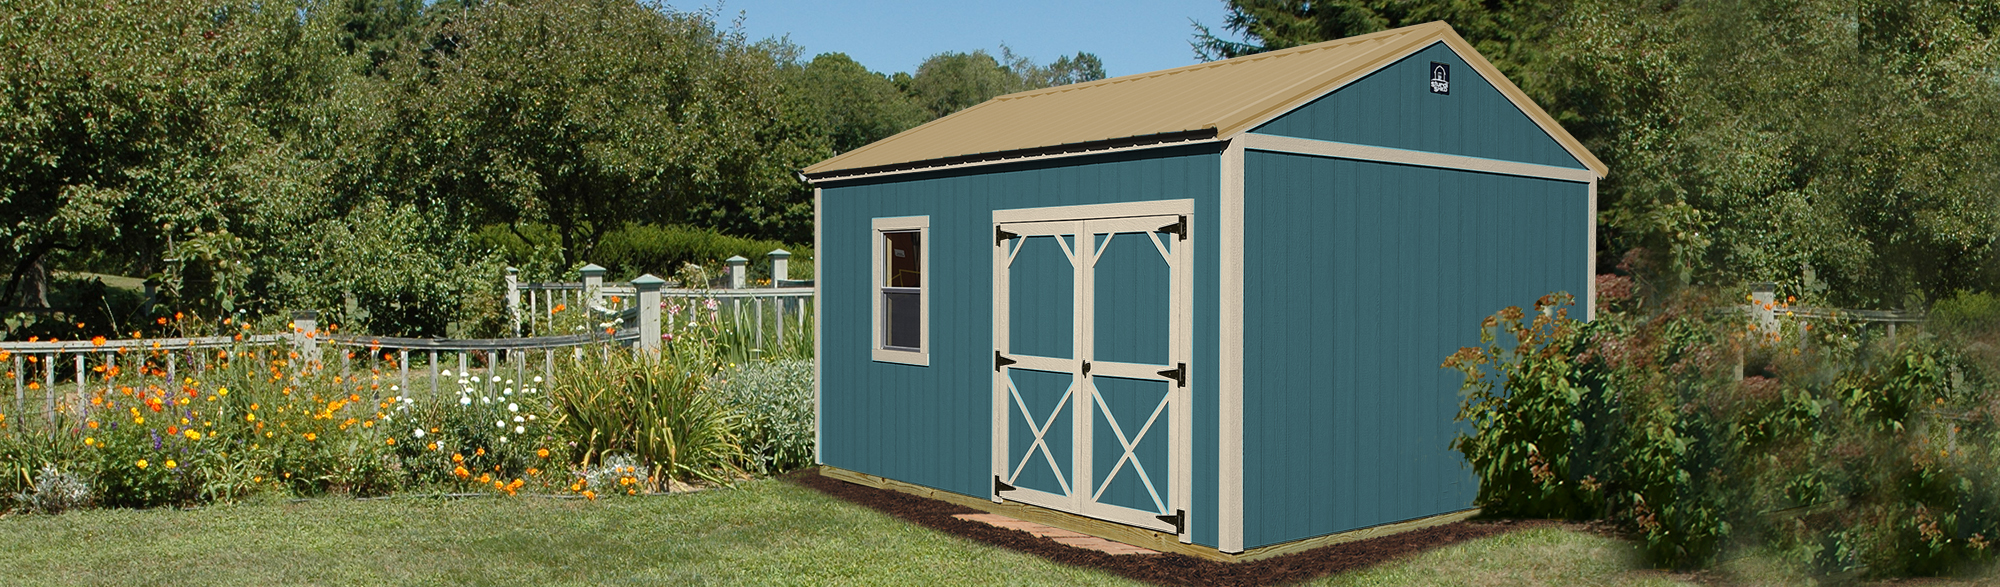 <h2>Garden Shed</h2> <p> <span>The perfect outdoor storage building for versatility!</span> </p>